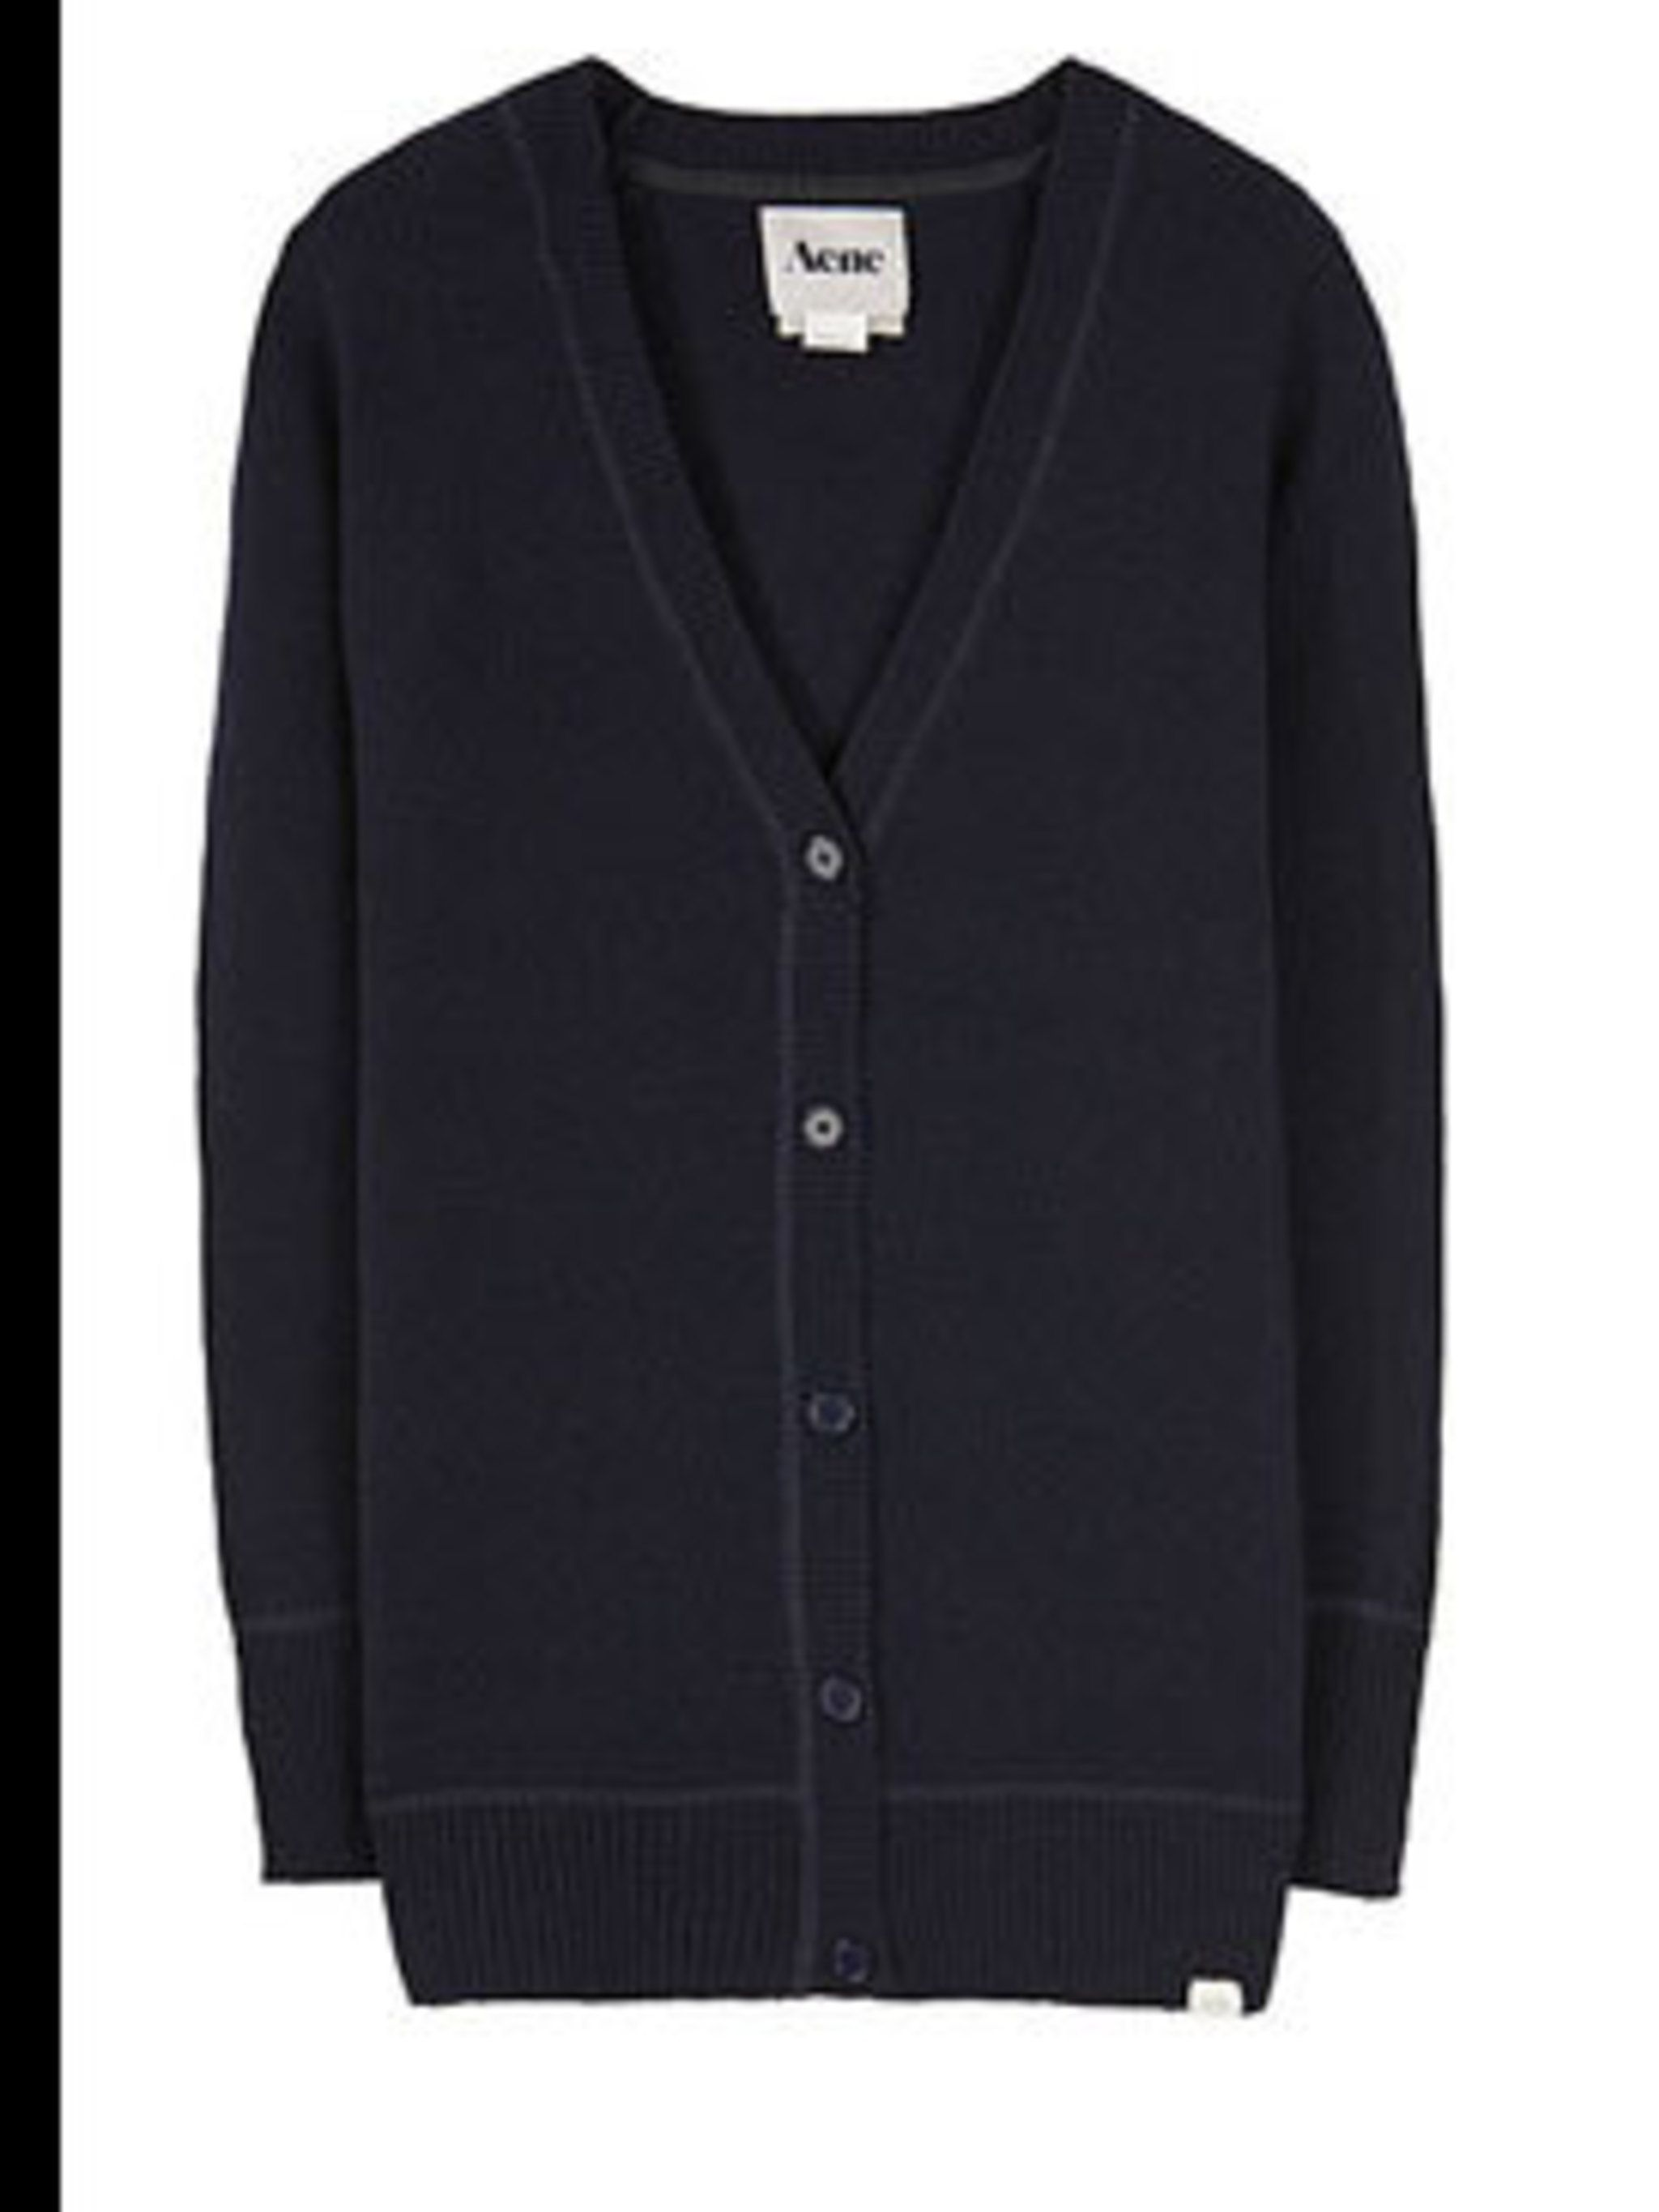 """<p>Navy cardigan, £98, by Acne at <a href=""""http://www.lagarconne.com/store/item.htm?itemid=4960&sid=293&pid=121"""">La Garconne</a></p>"""